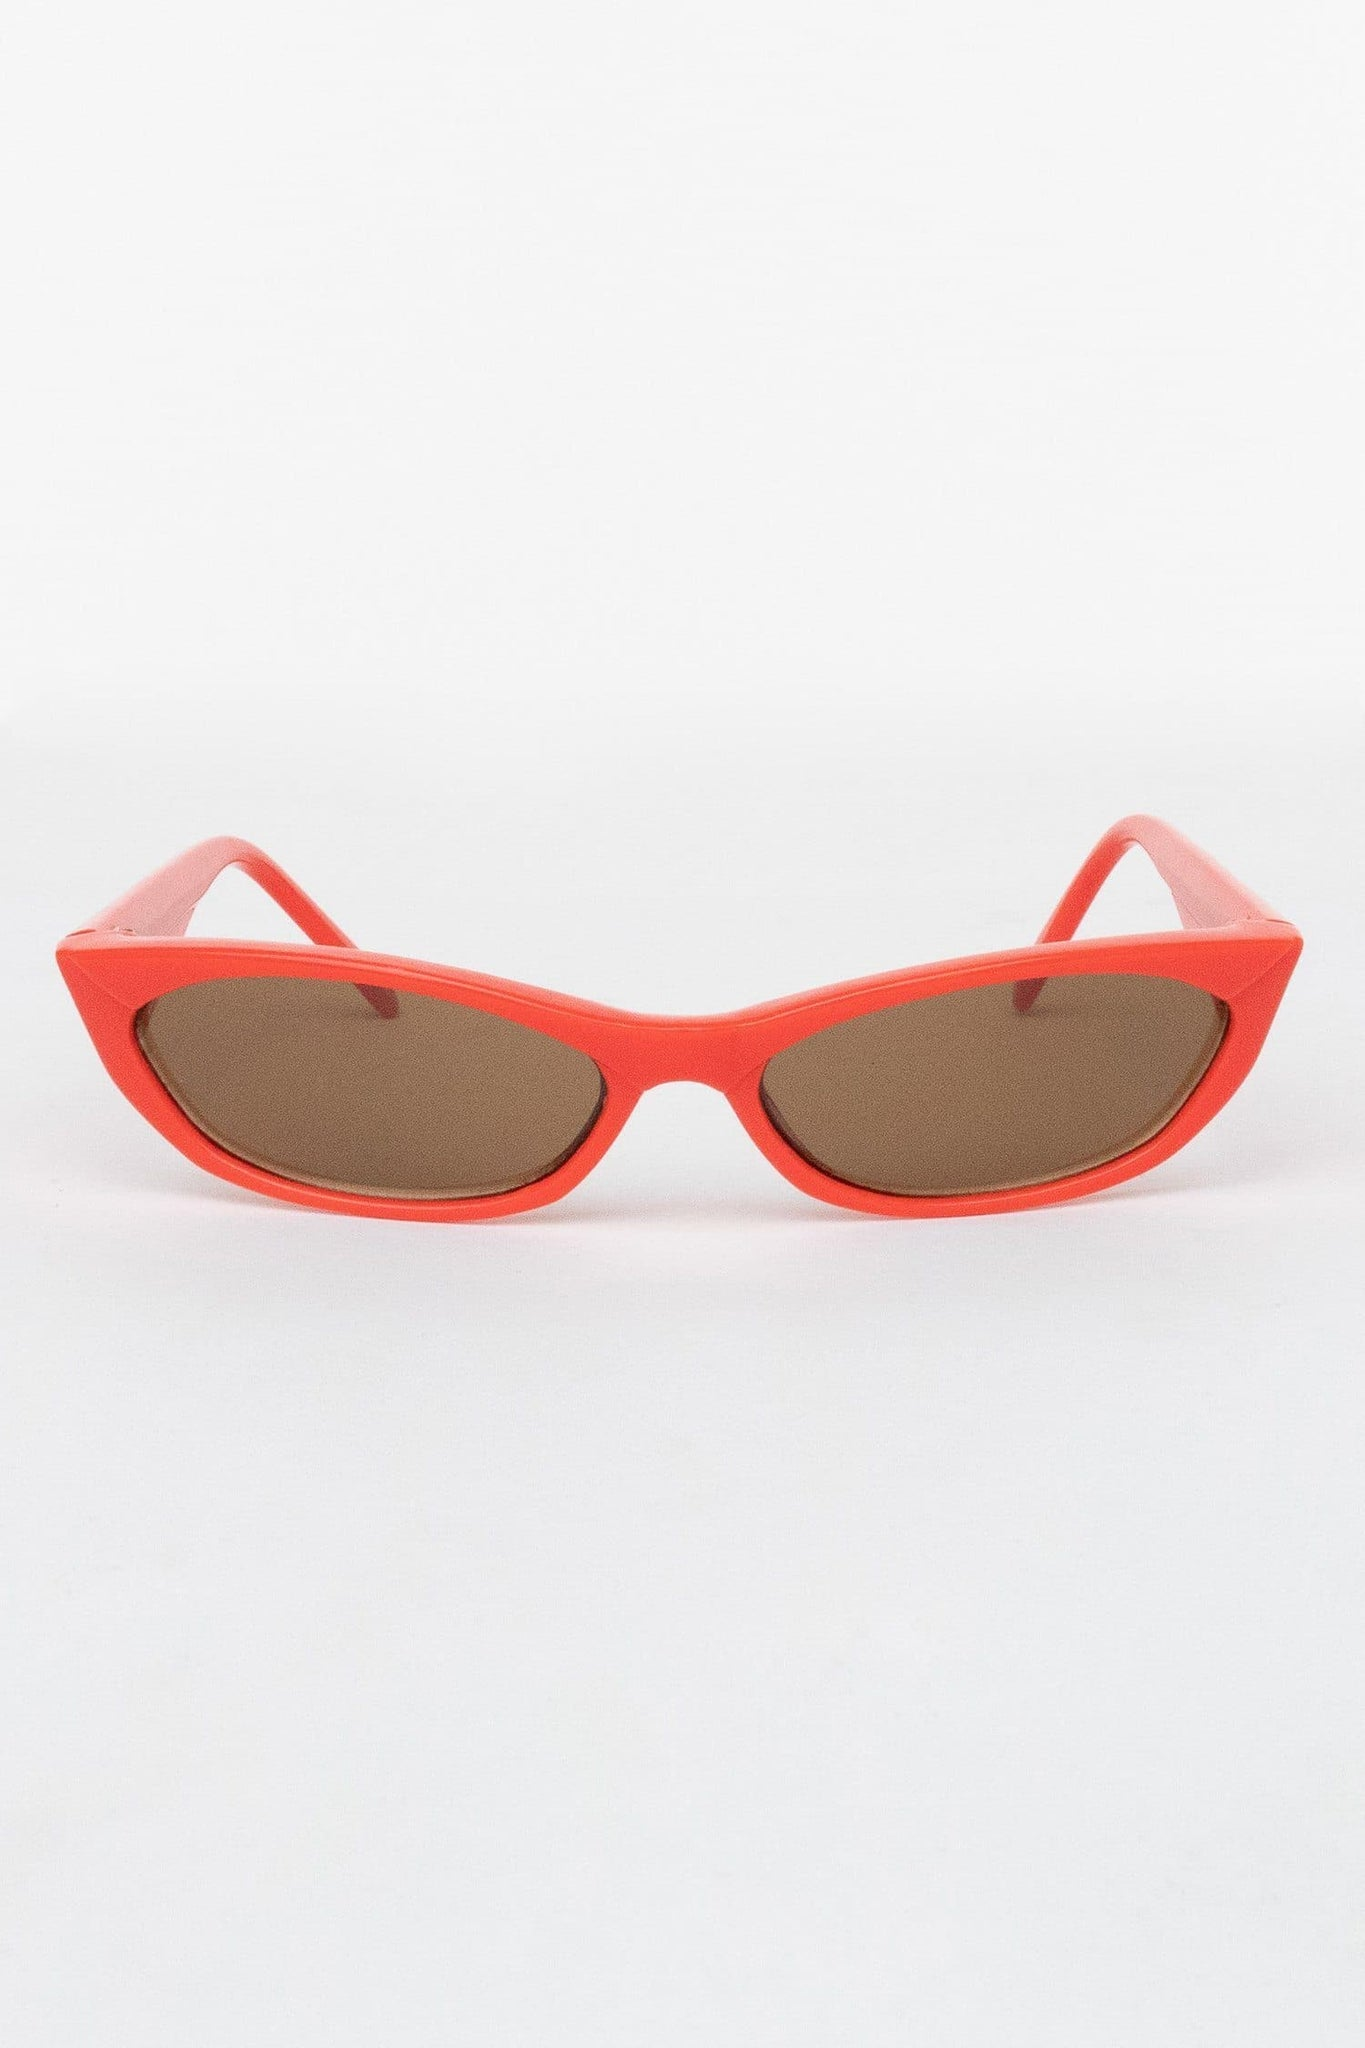 SGSKCAT - Katya Skinny Cat Eye Sunglasses